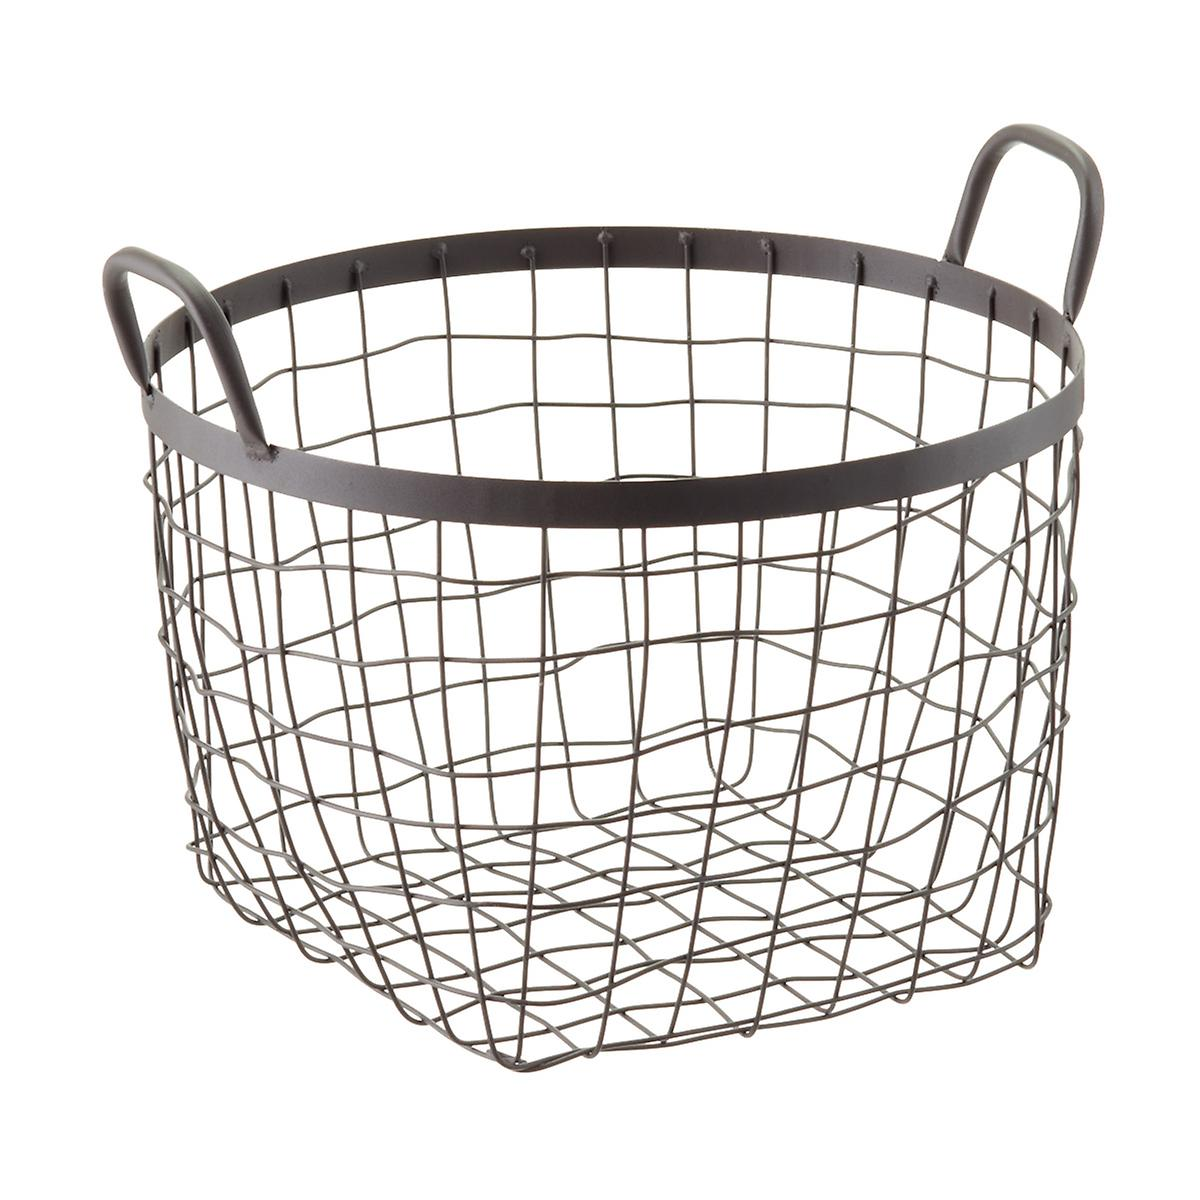 Rustic Decorative Storage Baskets With Handles  The. Vastu Living Room. Cheap Dining Room. Modern Chair For Living Room. Dwell Dining Room Table. Dining Room Extensions. Paint In Living Room Ideas. Open Living Room Design Ideas. Microfiber Living Room Chairs